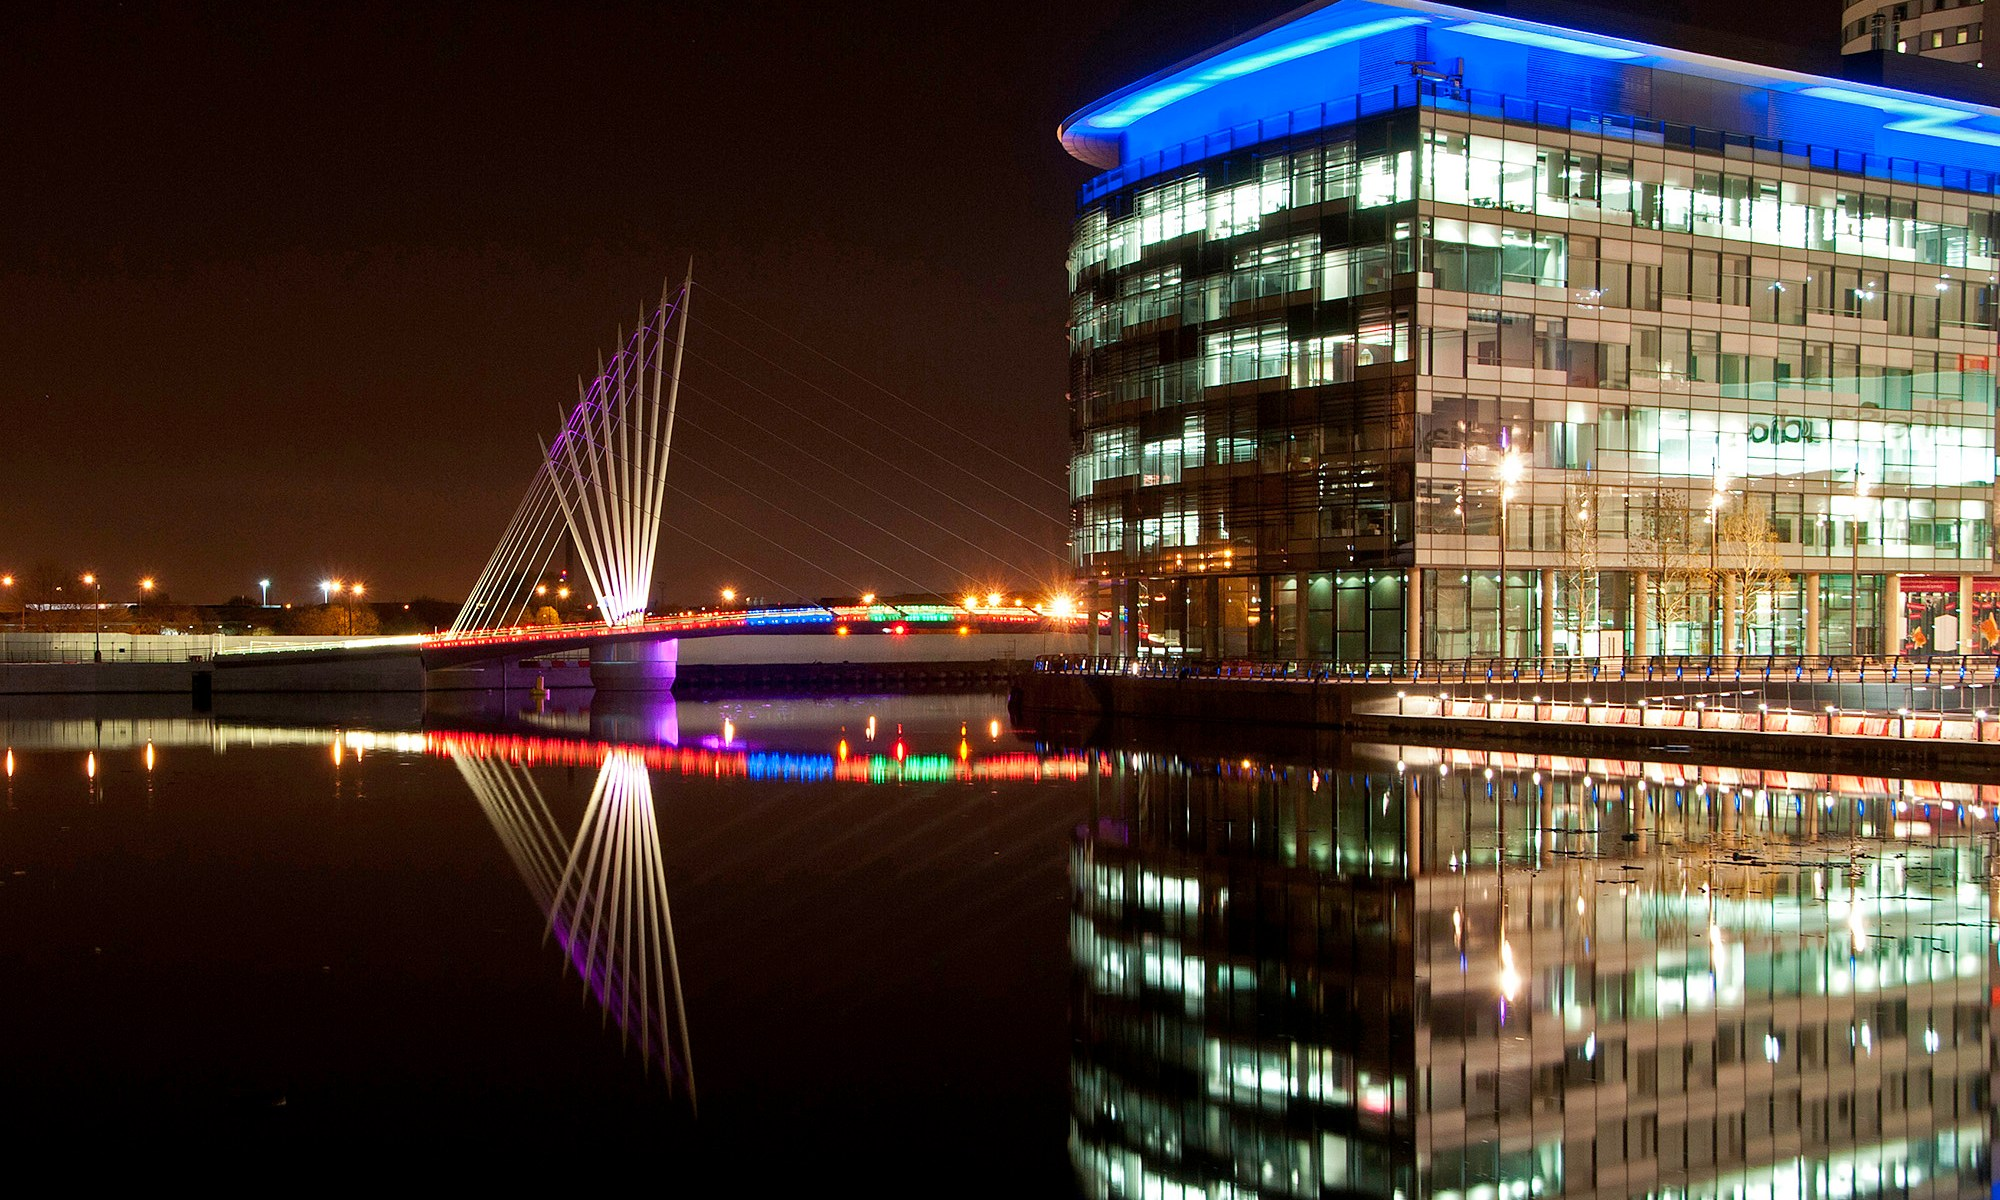 BBC Building and Bridge at Night